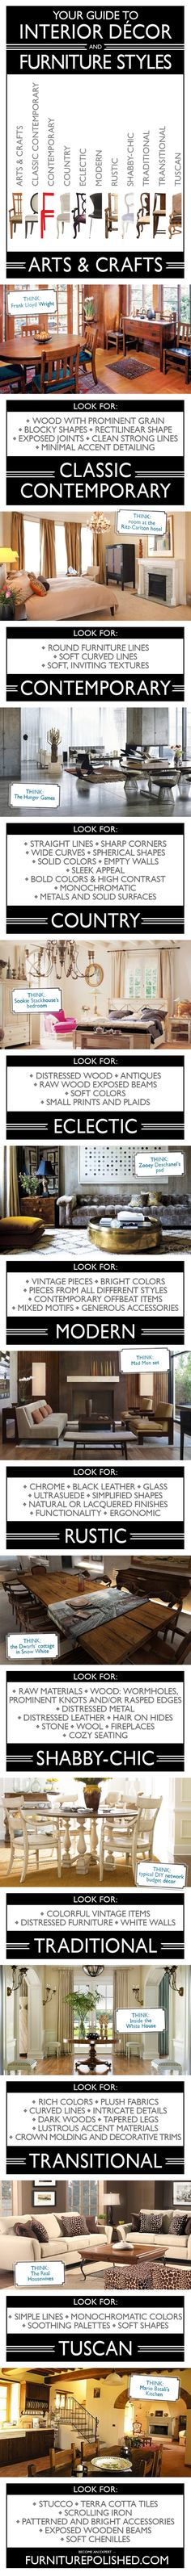 Interior Décor and Furniture Styles – Explained infographic - modern/rustic